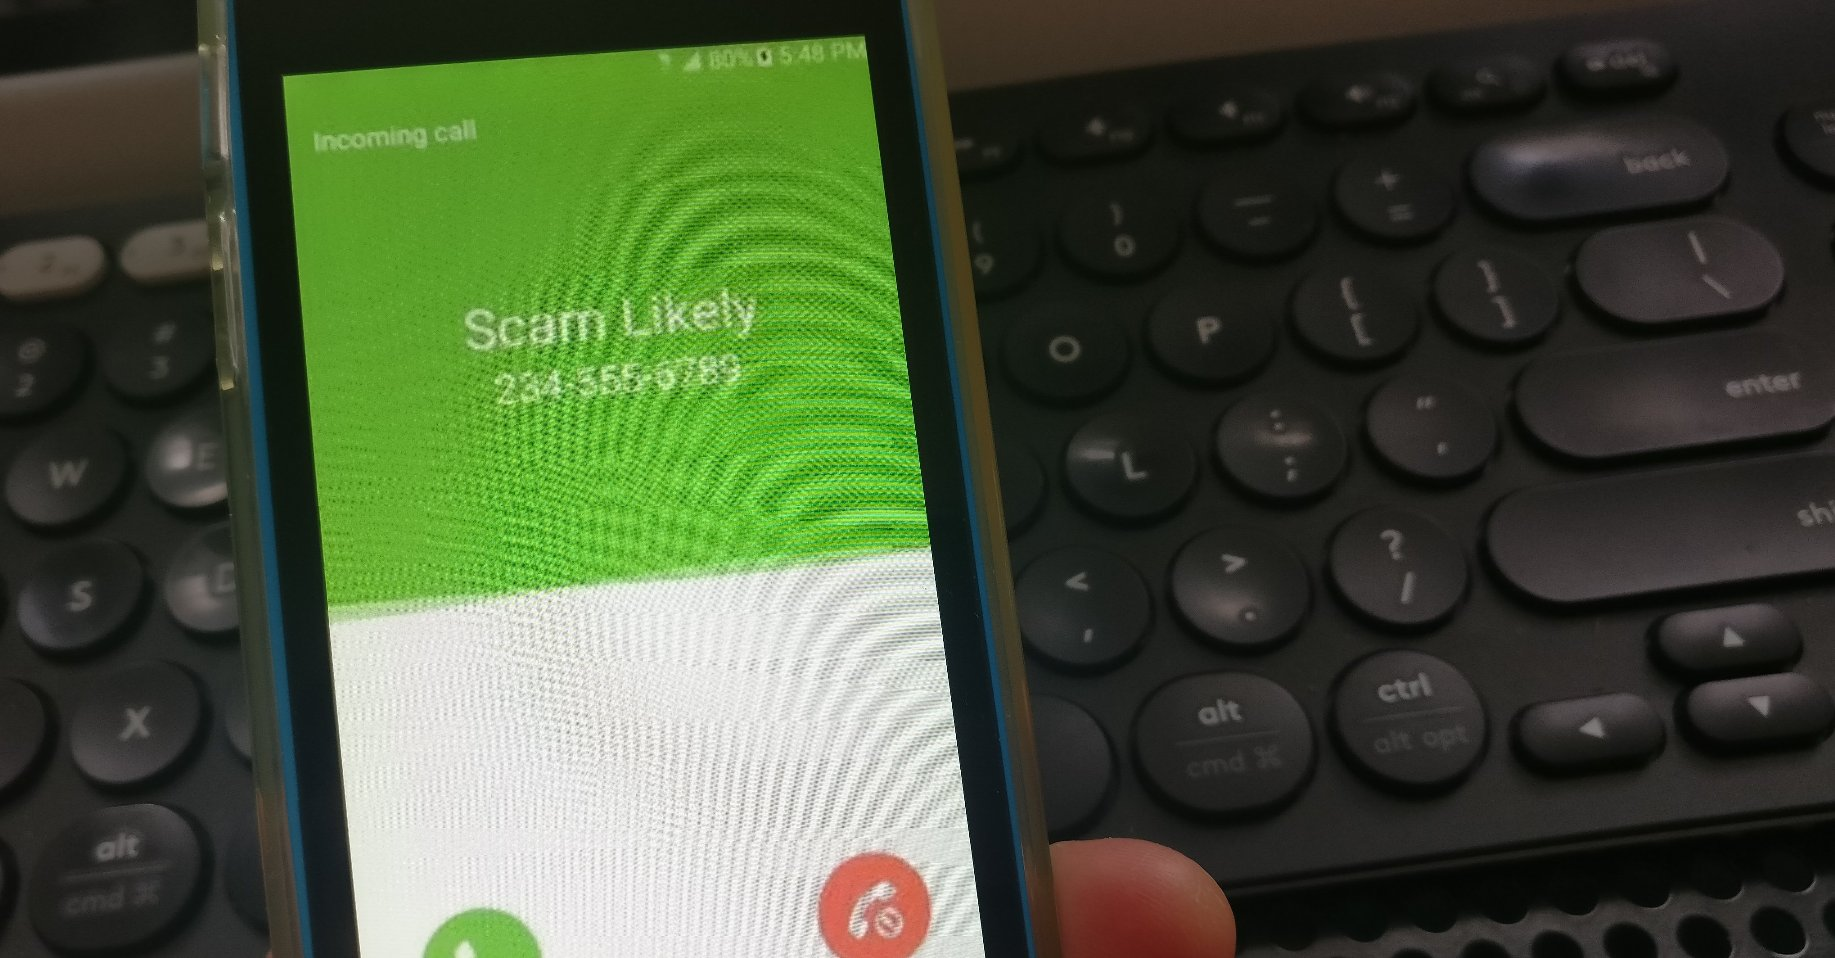 Mobile Adds Free Scam Call Warning System To Customers' Phones